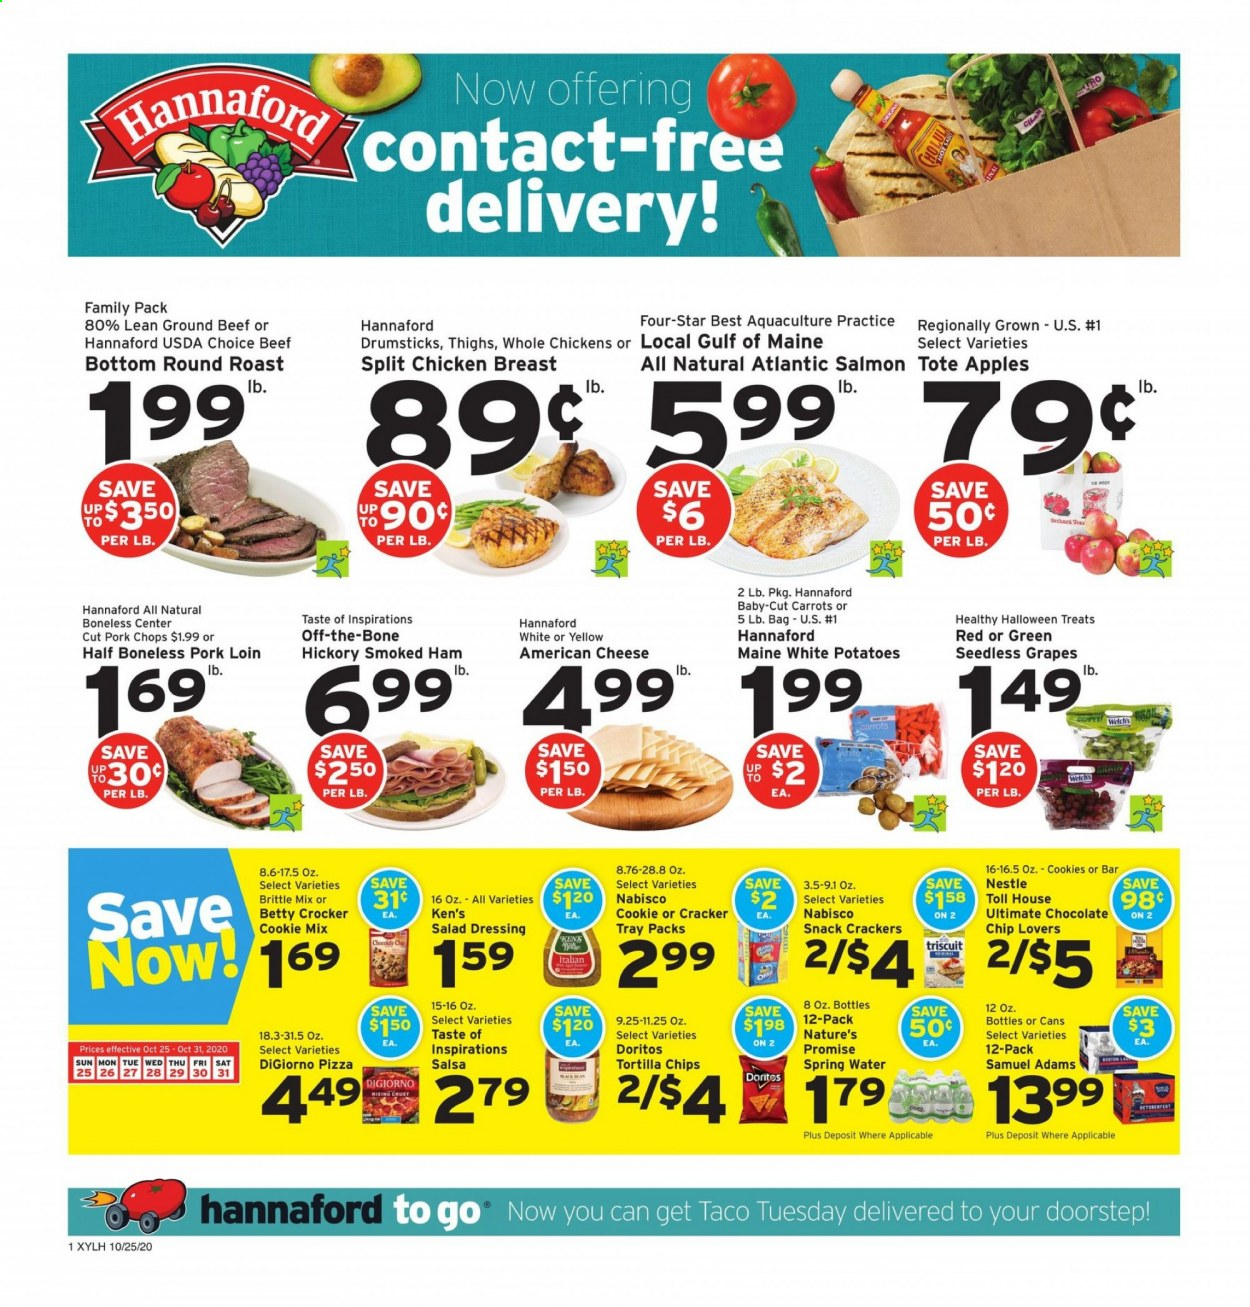 Hannaford Flyer - 10.25.2020 - 10.31.2020 - Sales products - american cheese, apples, beef meat, bottom, carrots, cookies, crackers, doritos, grapes, ground beef, nestlé, salad dressing, salmon, seedless grapes, spring water, tortilla chips, tray, ham, pizza, pork chops, pork loin, pork meat, potatoes, chicken, chicken breast, chips, chocolate, cheese, smoked ham, dressing, snack, salsa, tote, salad, cracker, treats, roast, family pack, apple, spring. Page 1.